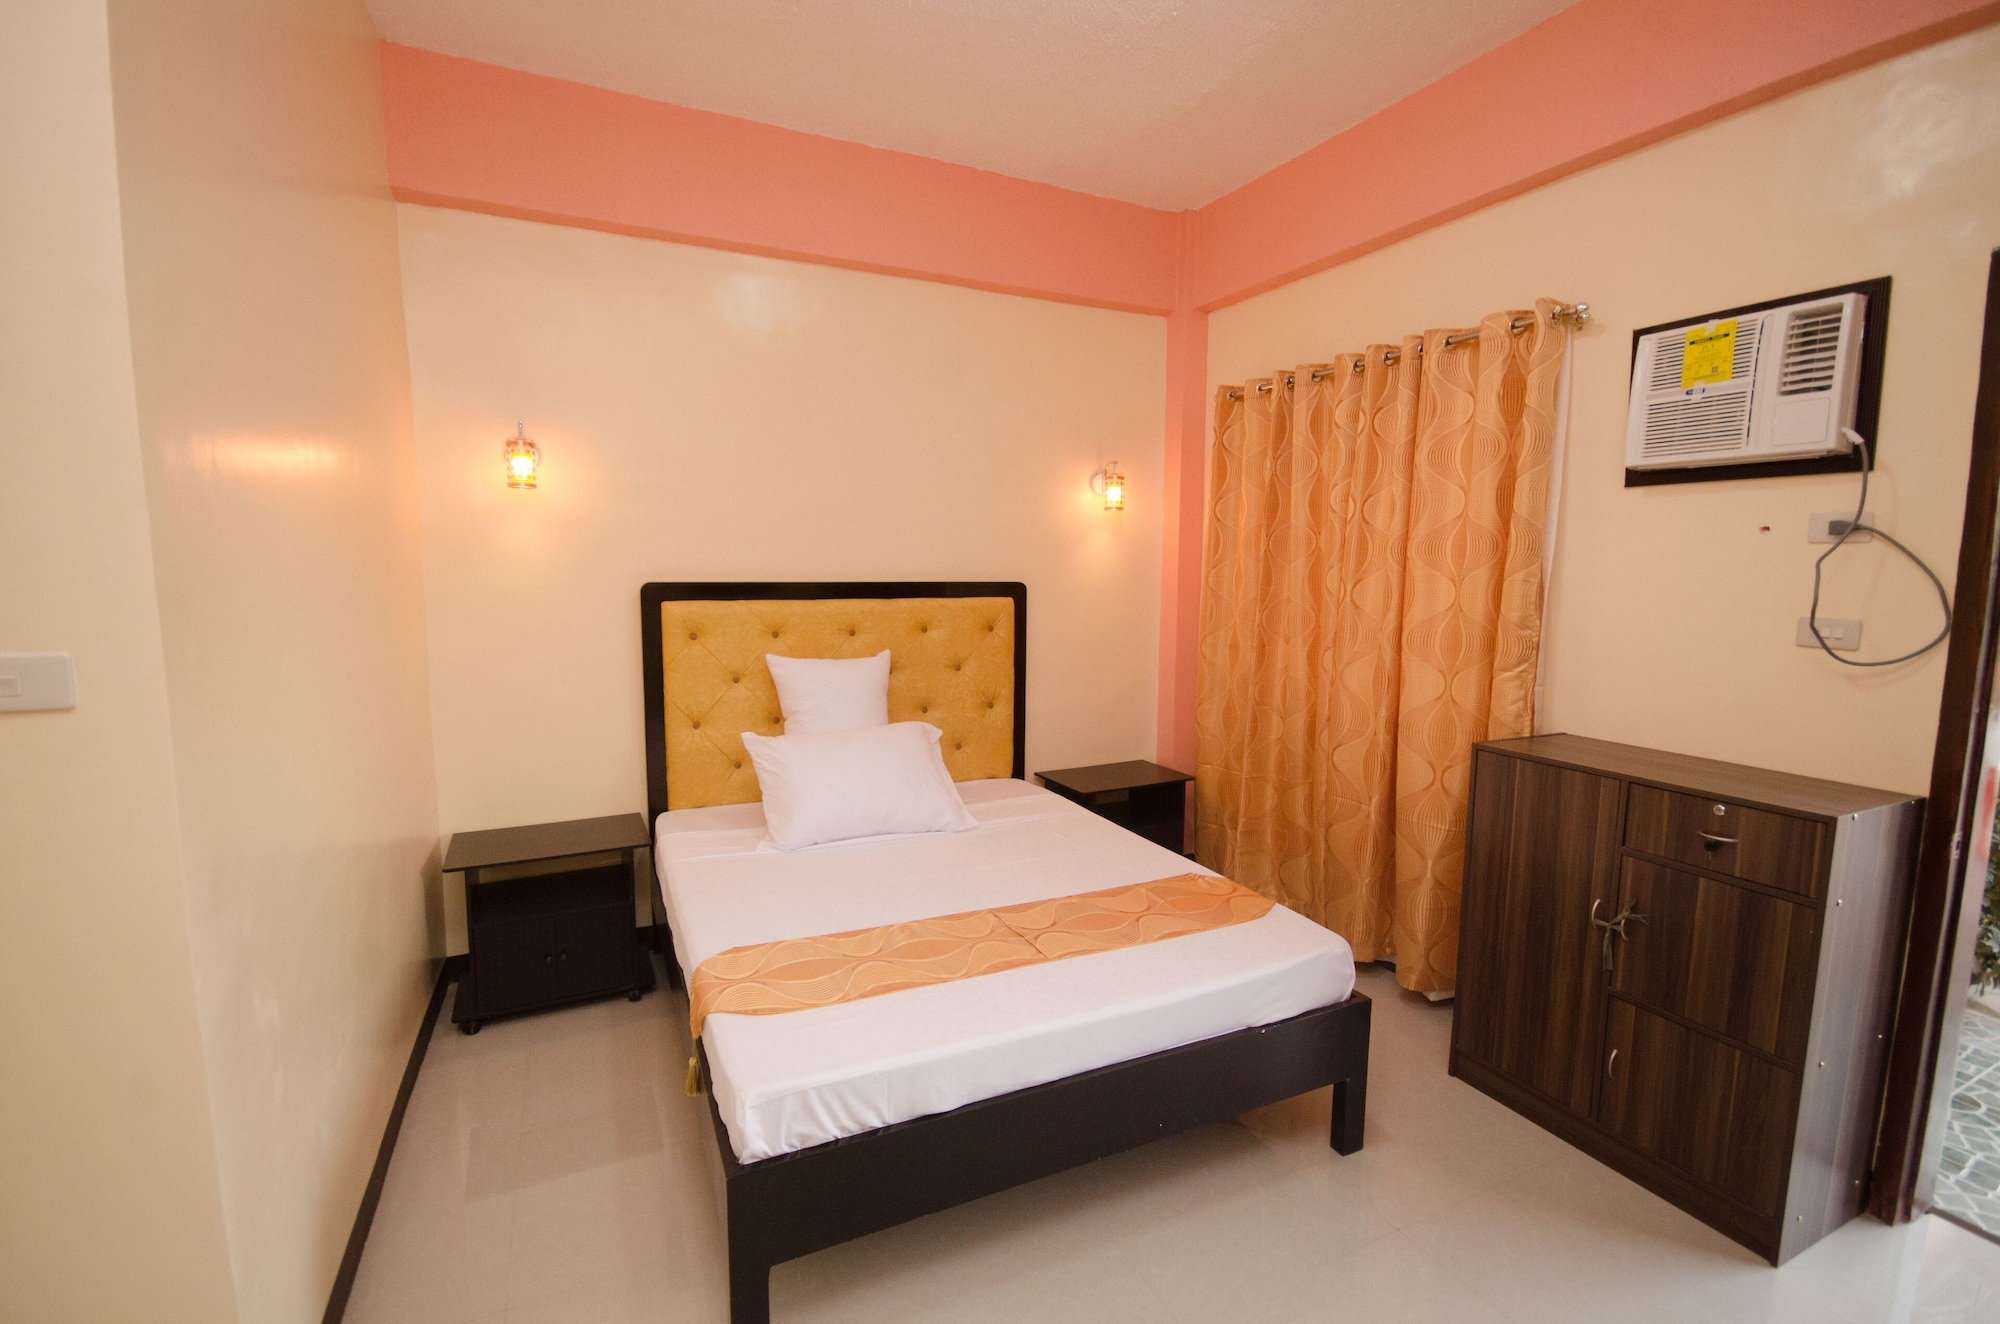 RSG Microhotel, General Santos City